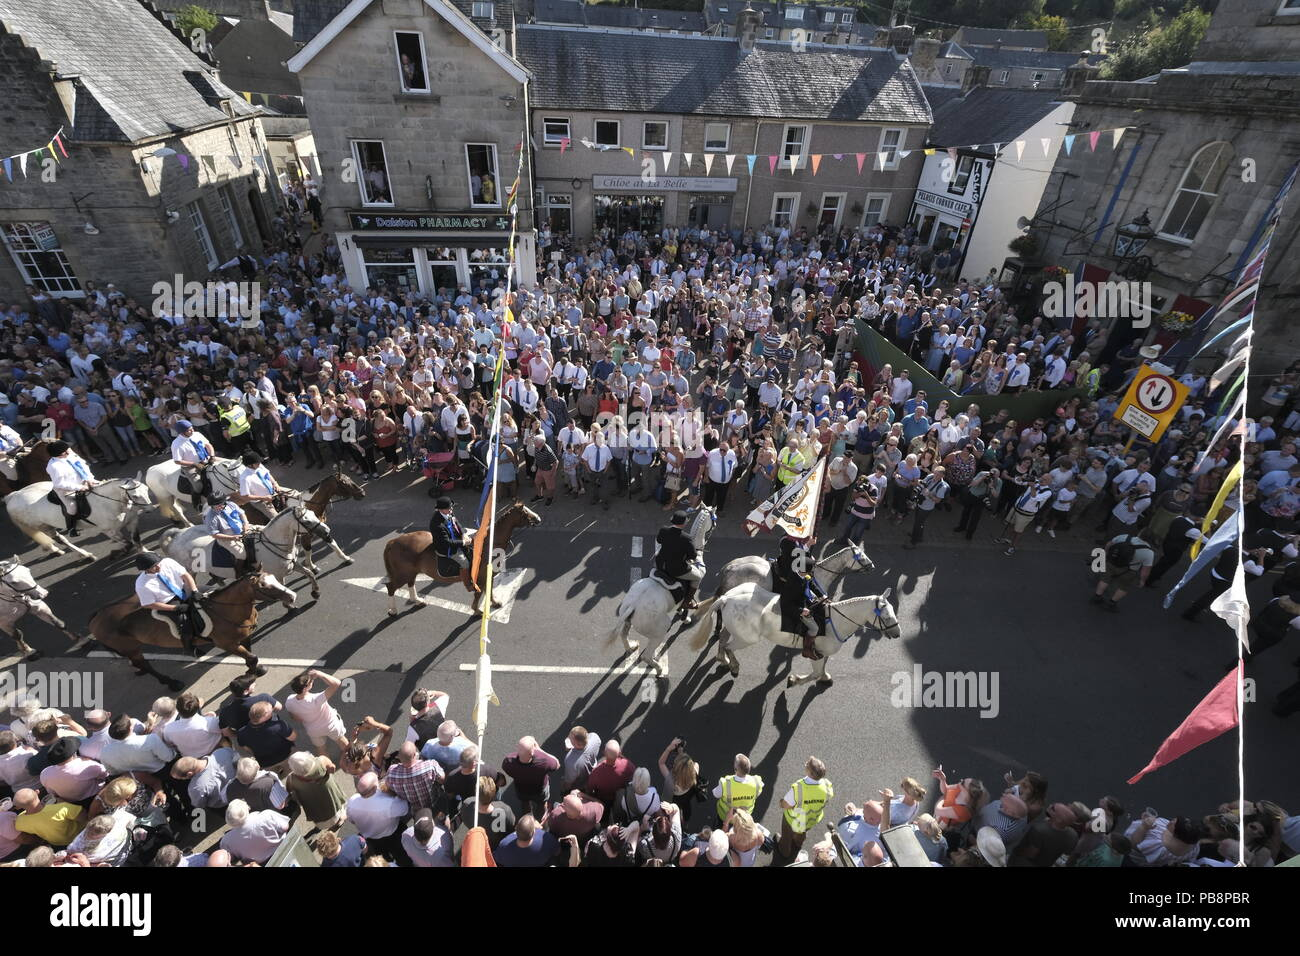 Langholm, Scotland, UK. 27th July, 2018.   Langholm Common Riding - 'Langholm's Great Day' the mounted supporters led by Langholm Cornet Iain Little and his Right-hand man Stuart Murray and Left-hand man Simon Tweddle passing thru the Market Square in Langholm, 'The Muckle Toon' has seen tradition upheld for over 250 years with the Annual Langholm Common Riding which takes place every year on the last Friday in July, This year falling on Friday 27th.    Credit: Rob Gray/Alamy Live News - Stock Image